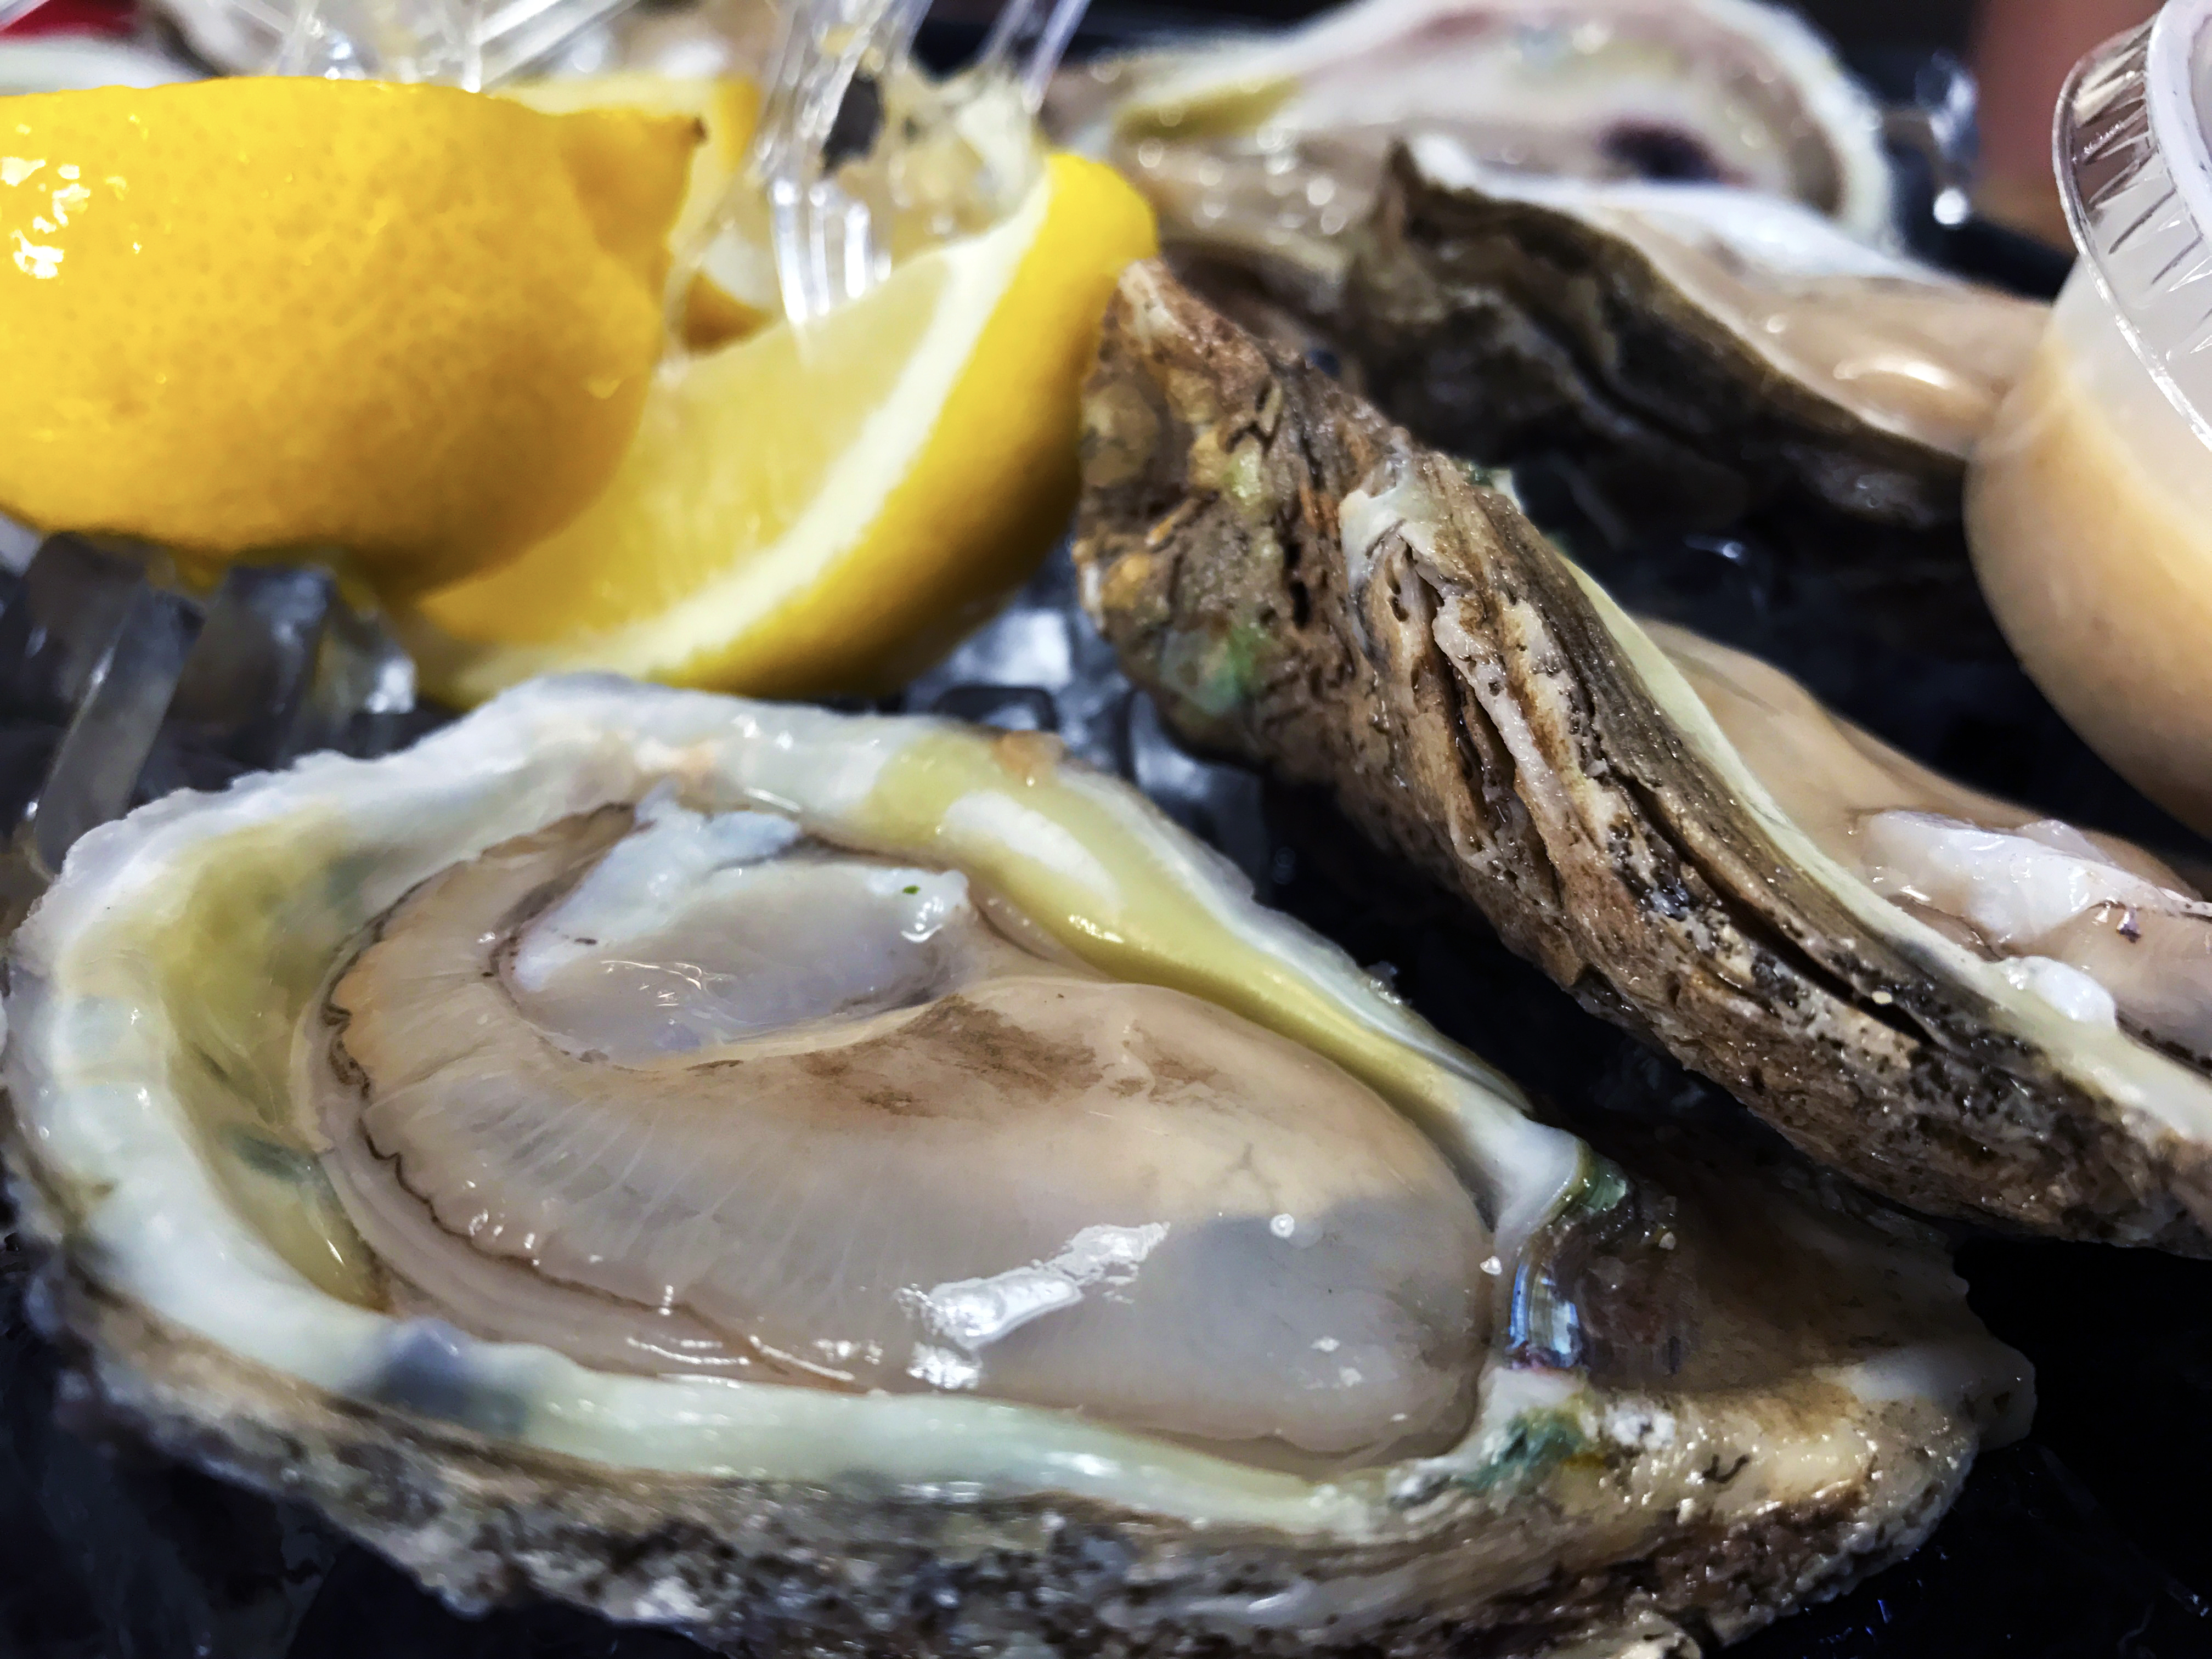 Raw Oysters from Gulf Shores Steamer//Kaitlan Foland